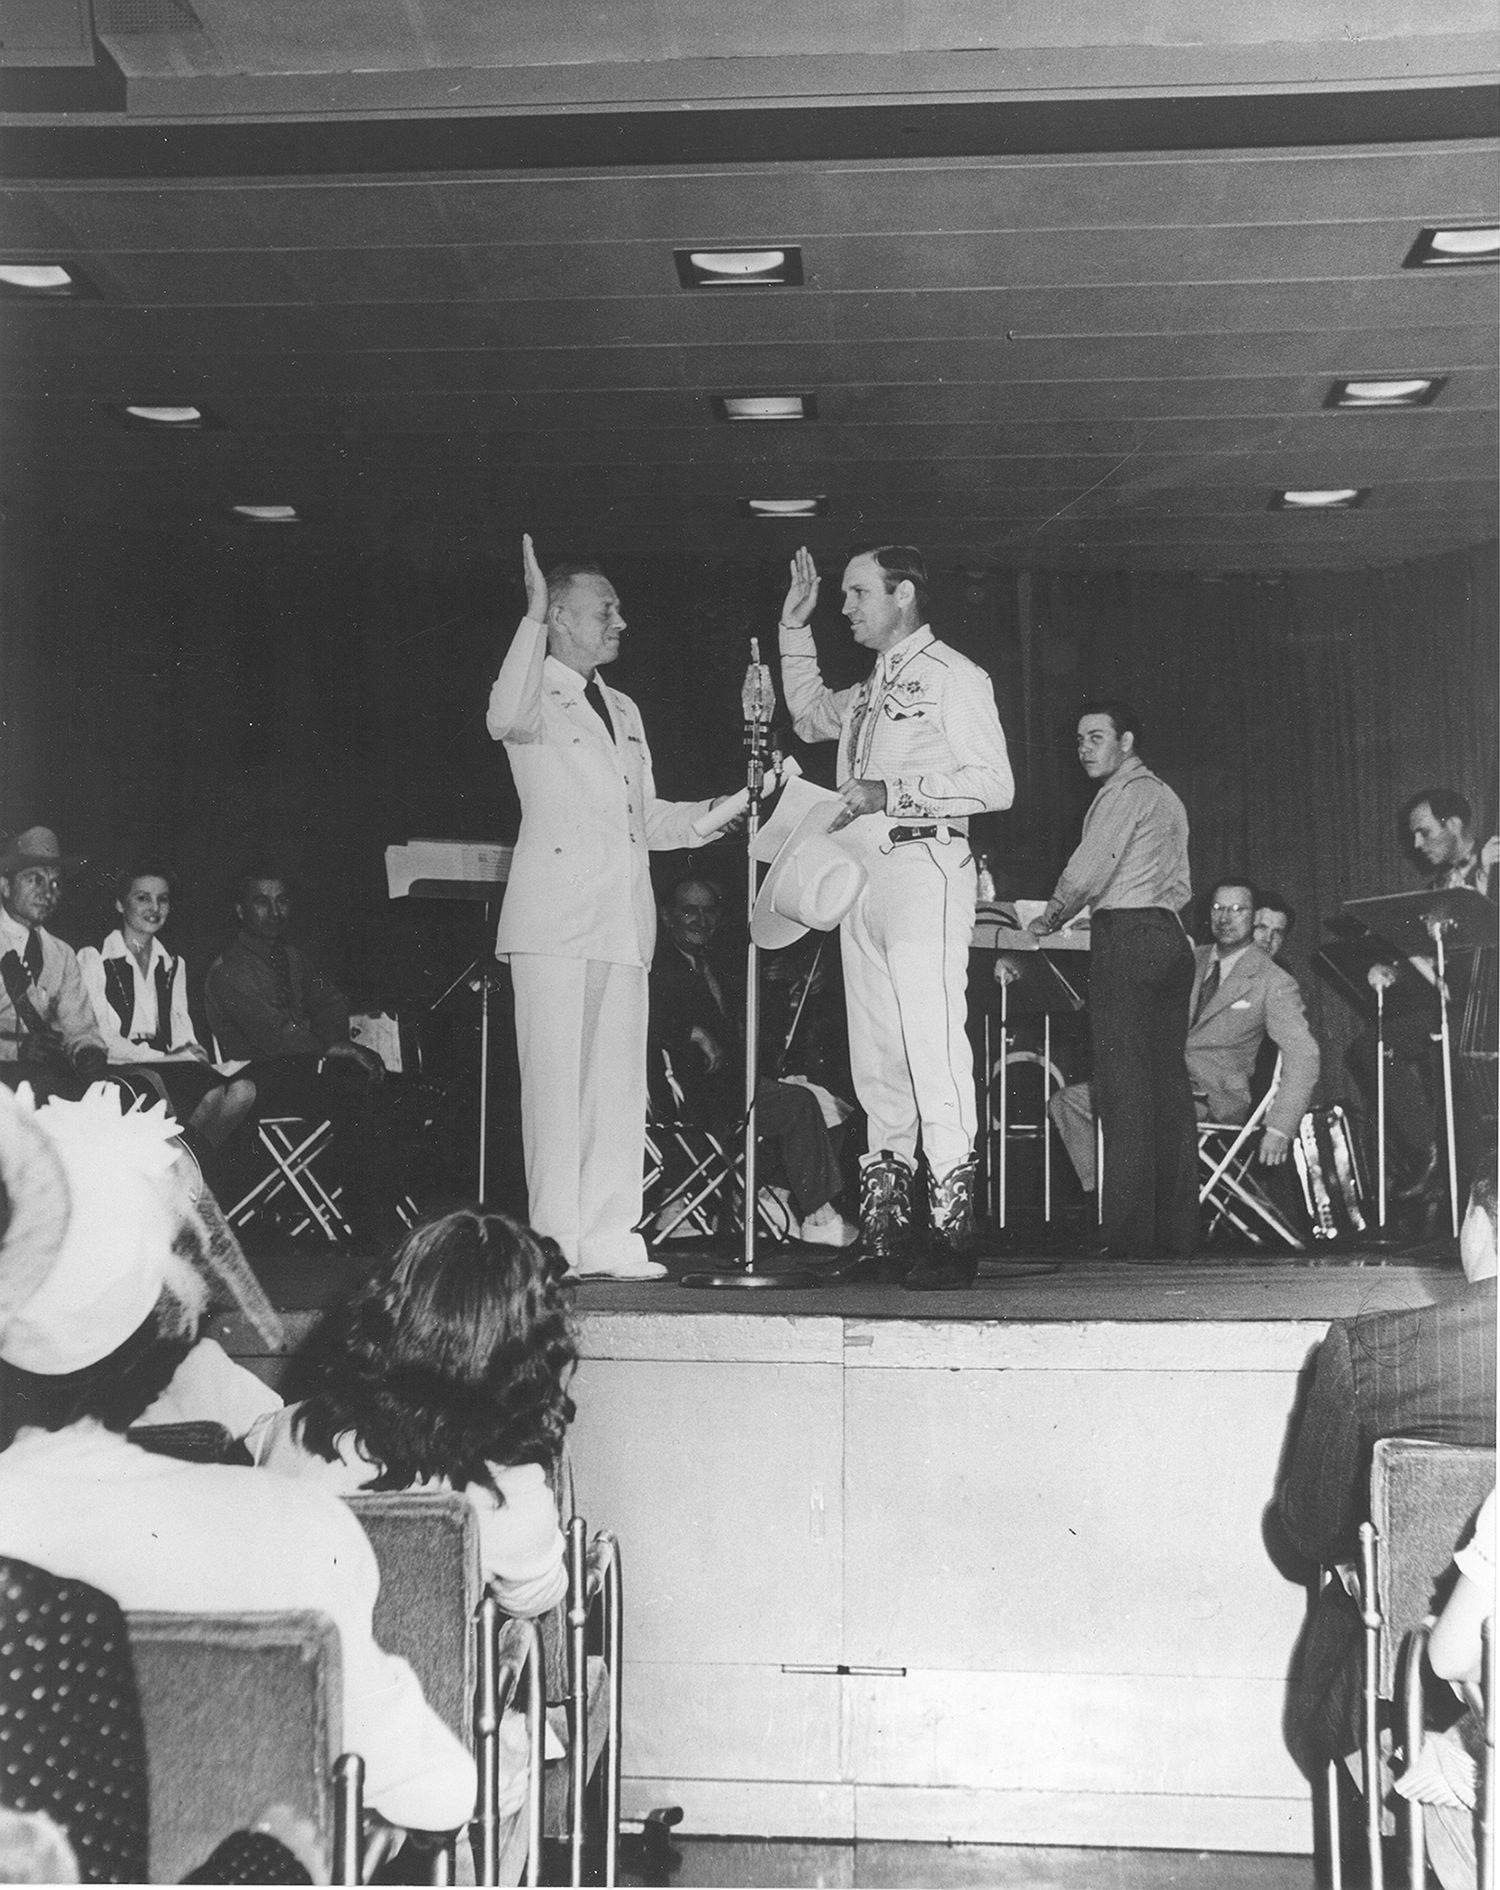 Gene Autry raises right hand as he takes oath to enlist in the military.